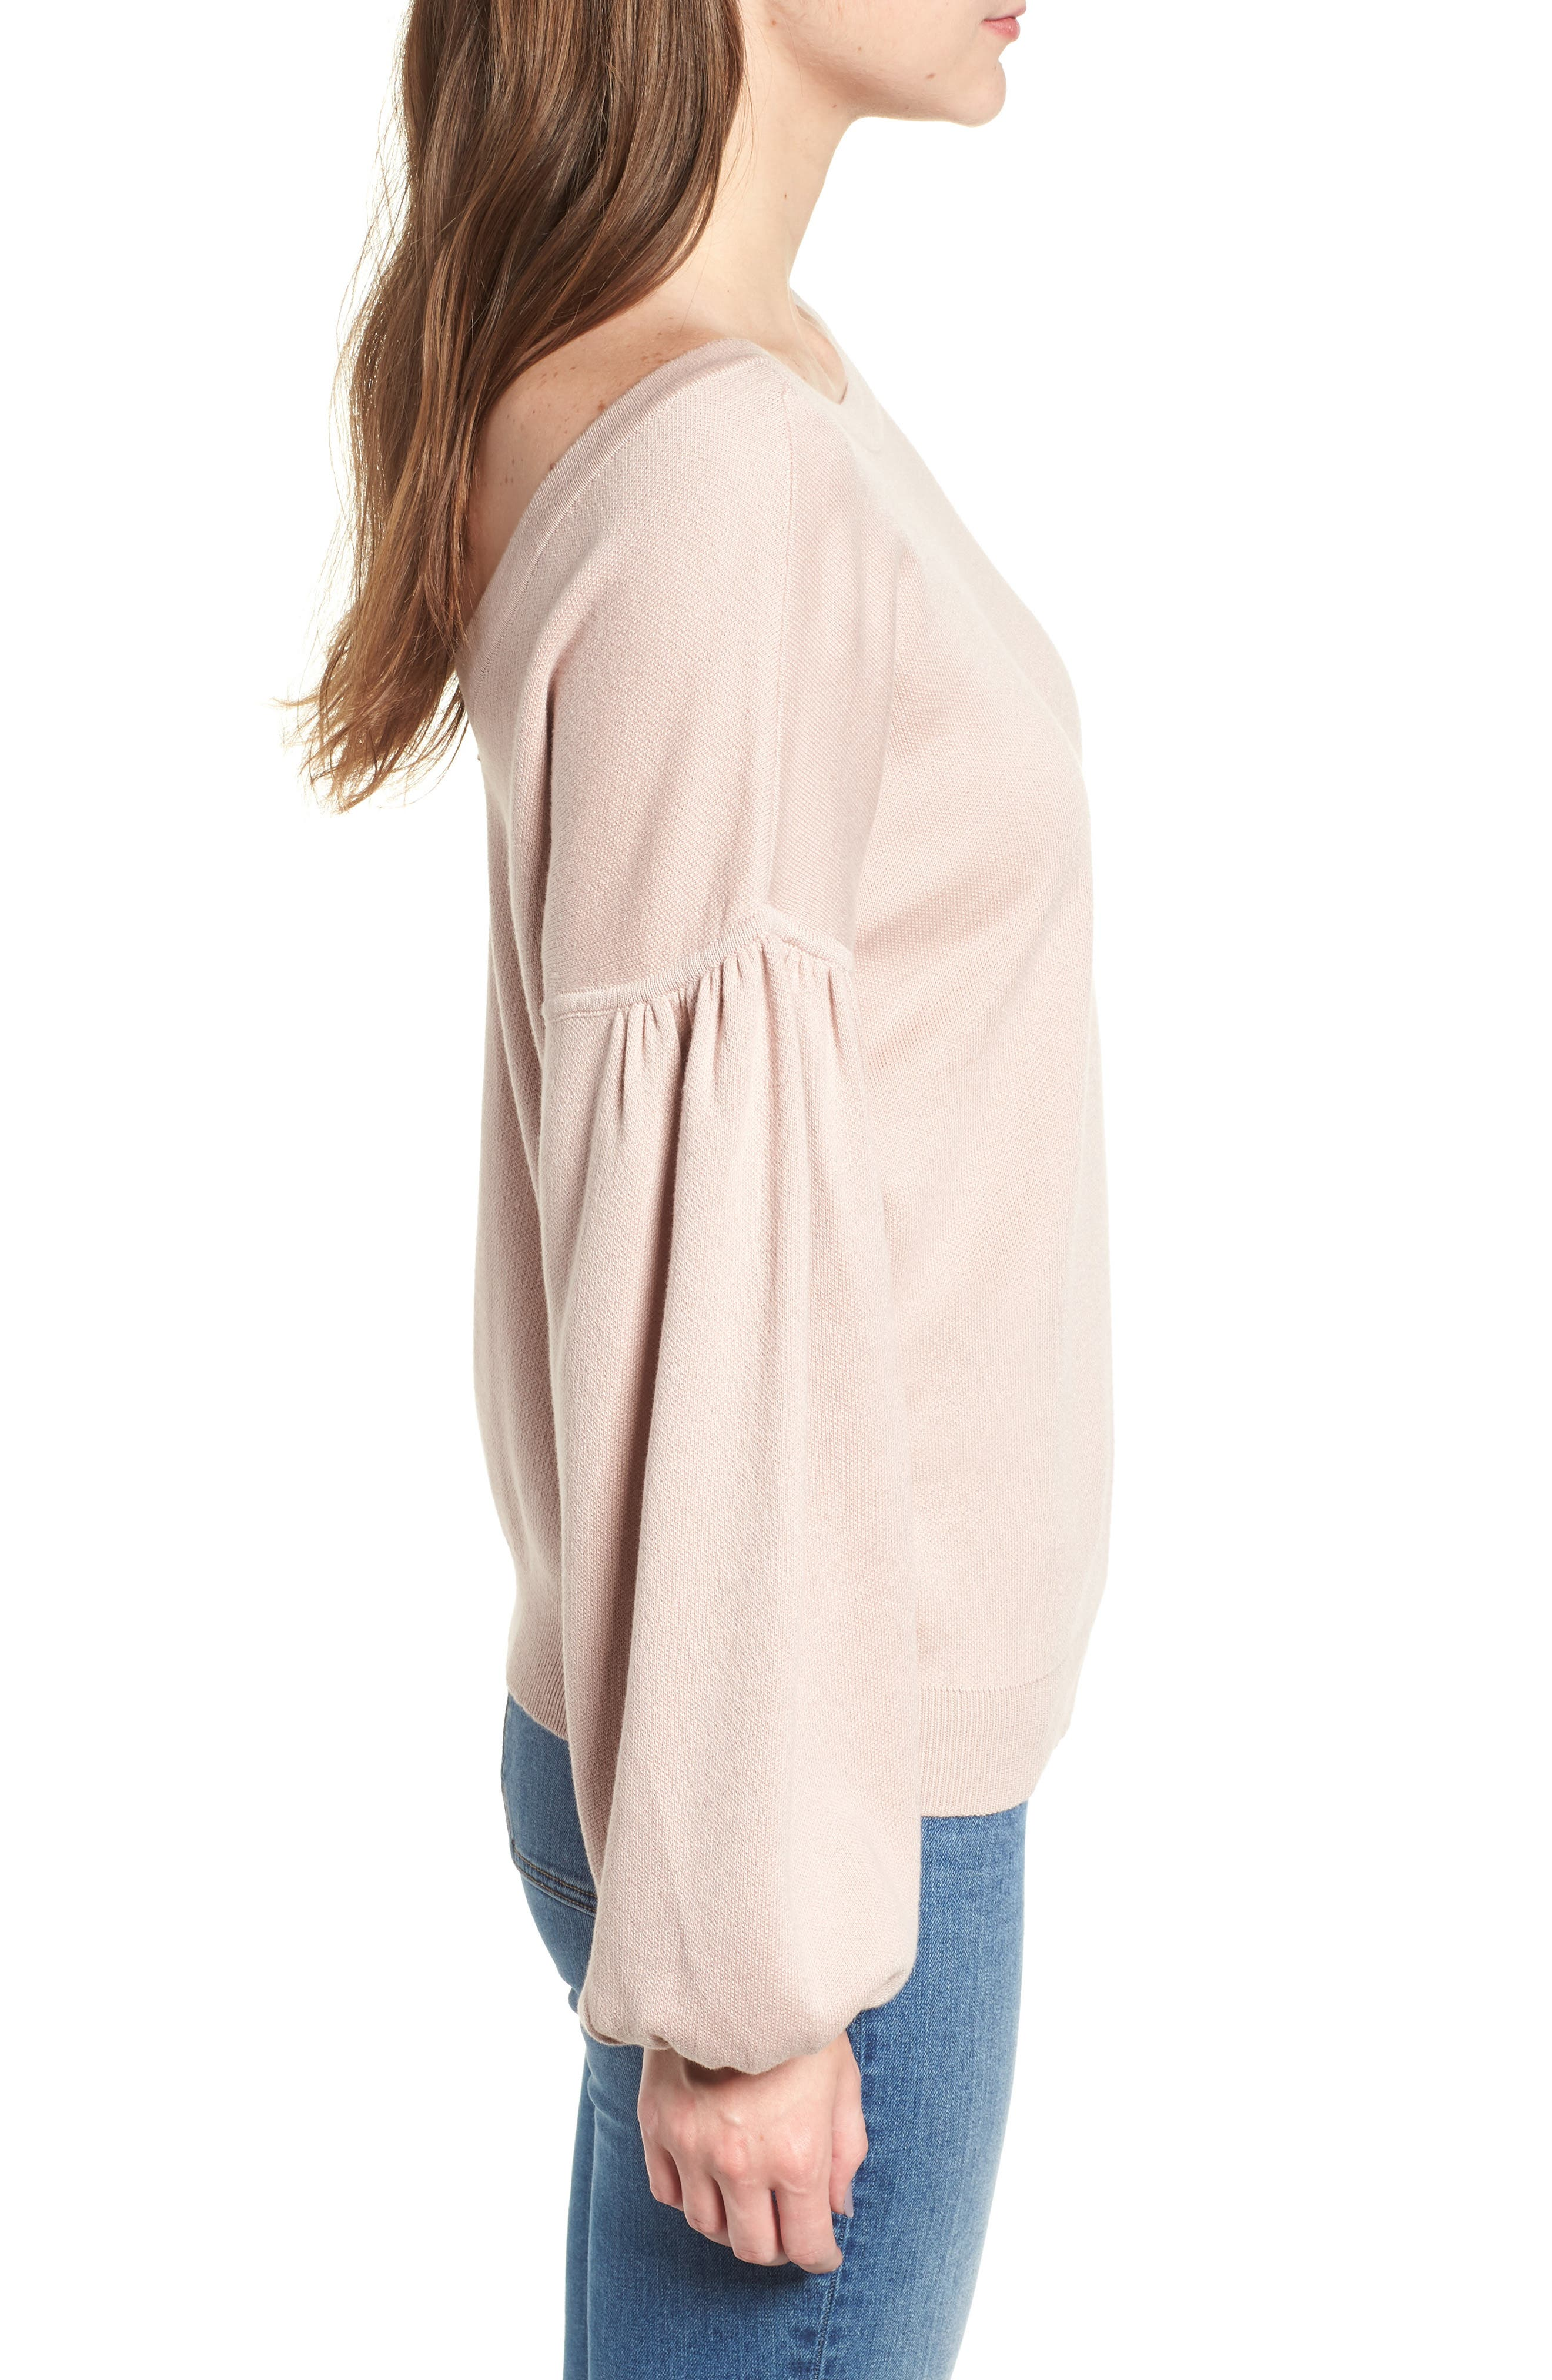 Bishop + Young Hailey Balloon Sleeve Sweater,                             Alternate thumbnail 3, color,                             QUARTZ